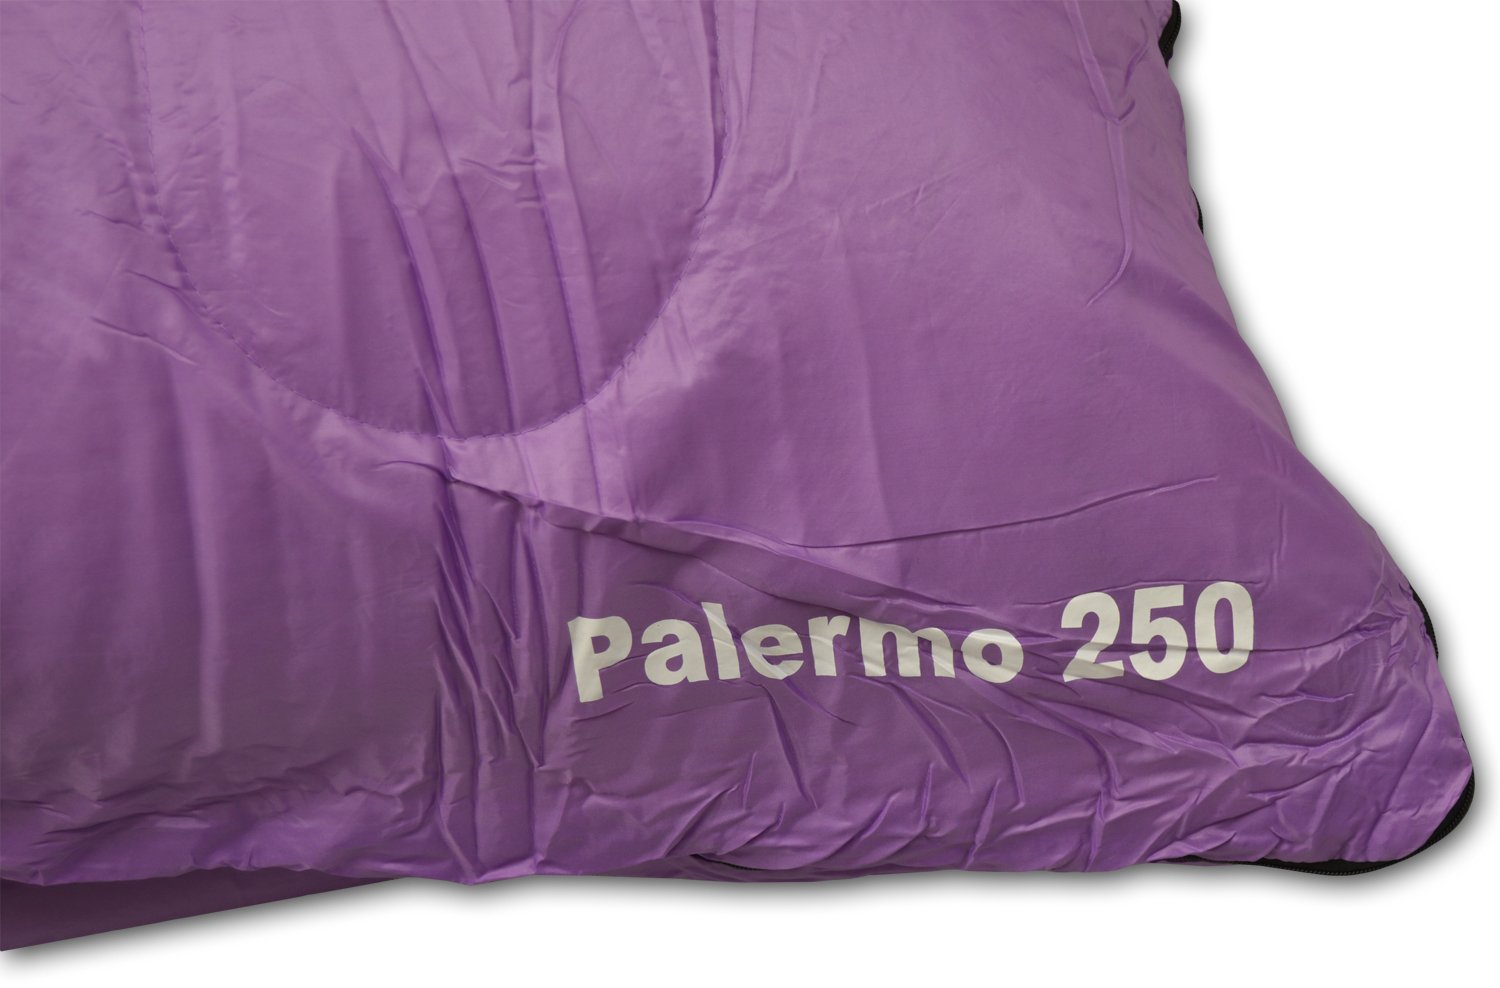 Festivals Waterproof Andes Palermo 250 Rectangle Sleeping Bag Warm 250GSM Filling Ideal For Camping Compression Carry Bag Included